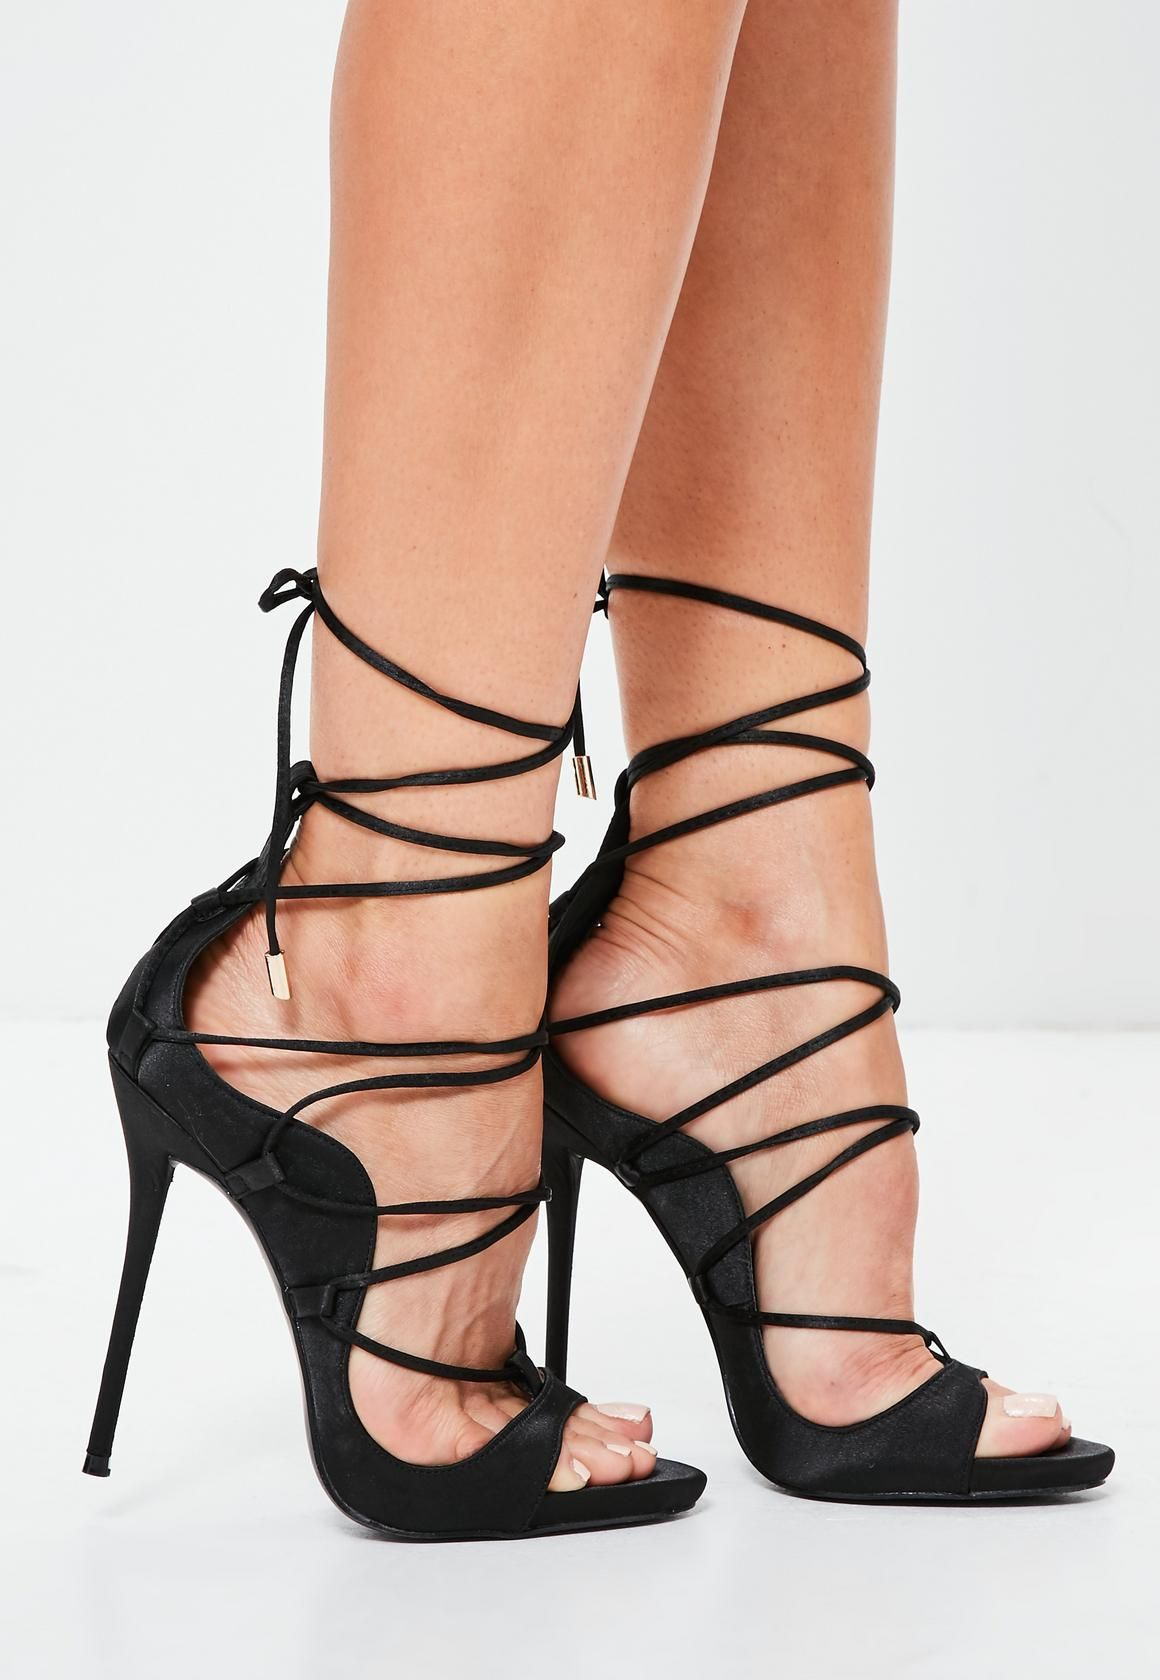 59e431ecea7 Missguided - Black Satin Gladiator Sandals